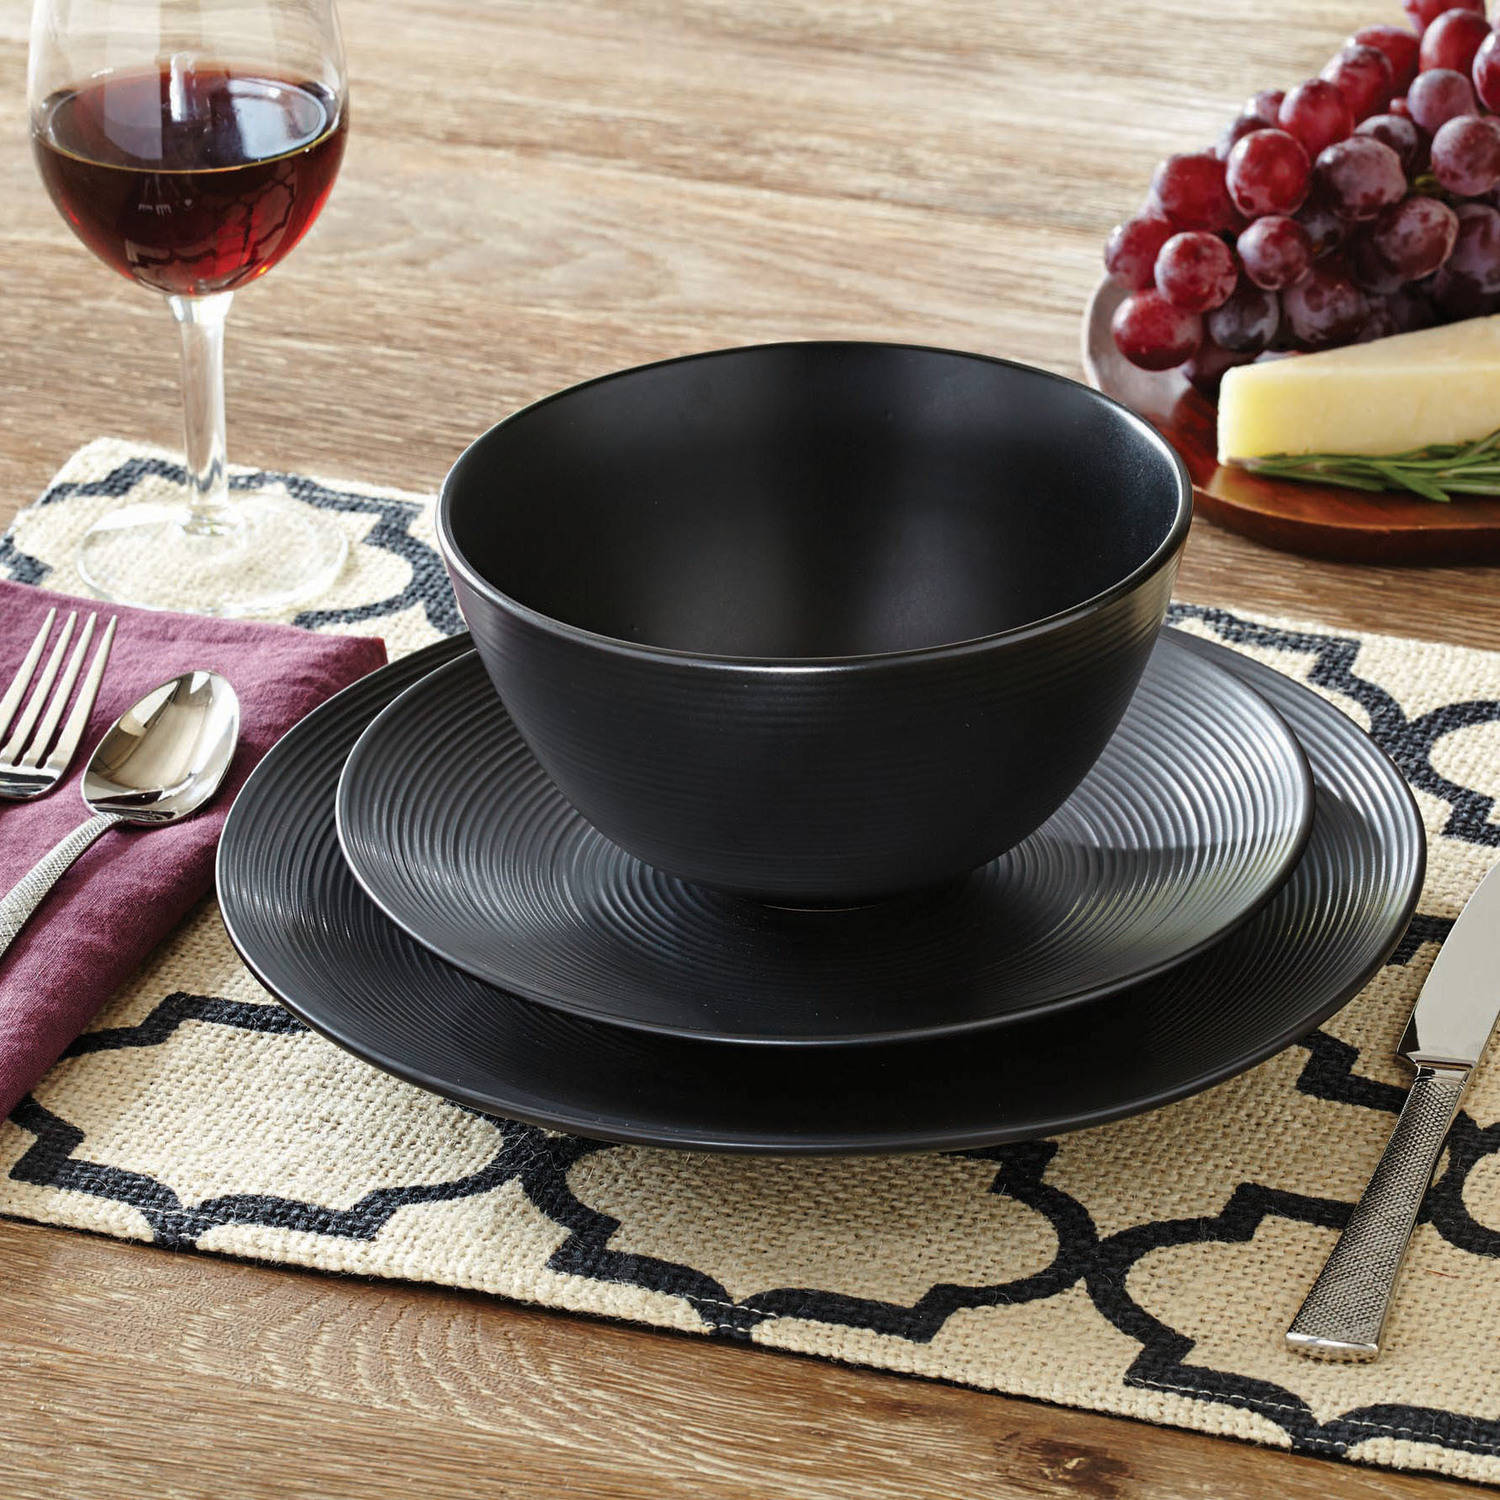 Better Homes and Gardens Matte Swirl 12-Piece Dinnerware Set\u2026 & Mainstays 16-Piece Dinnerware Set Charcoal Gray - Walmart.com